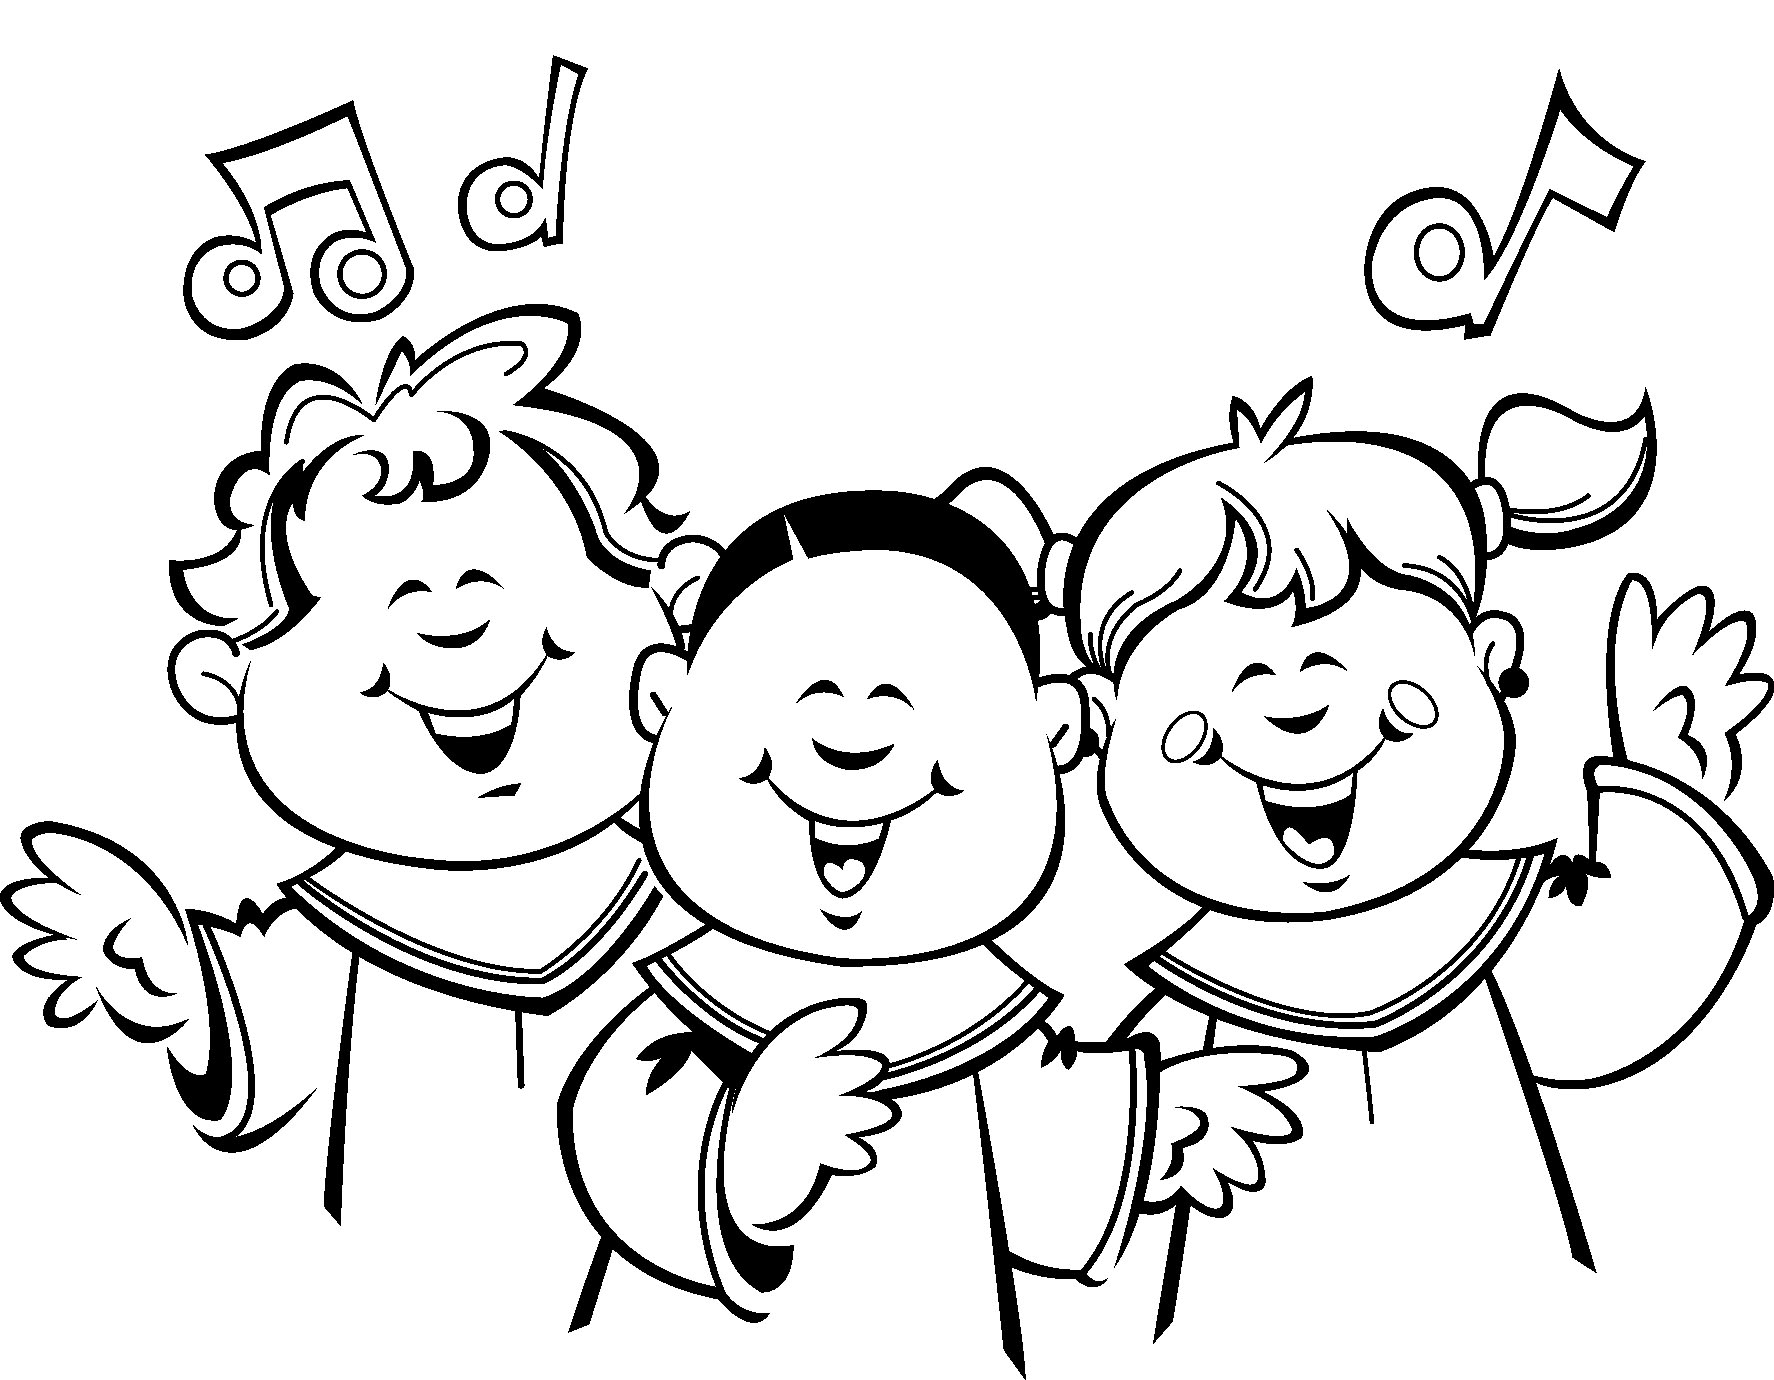 hight resolution of children choir clip art sketch coloring page